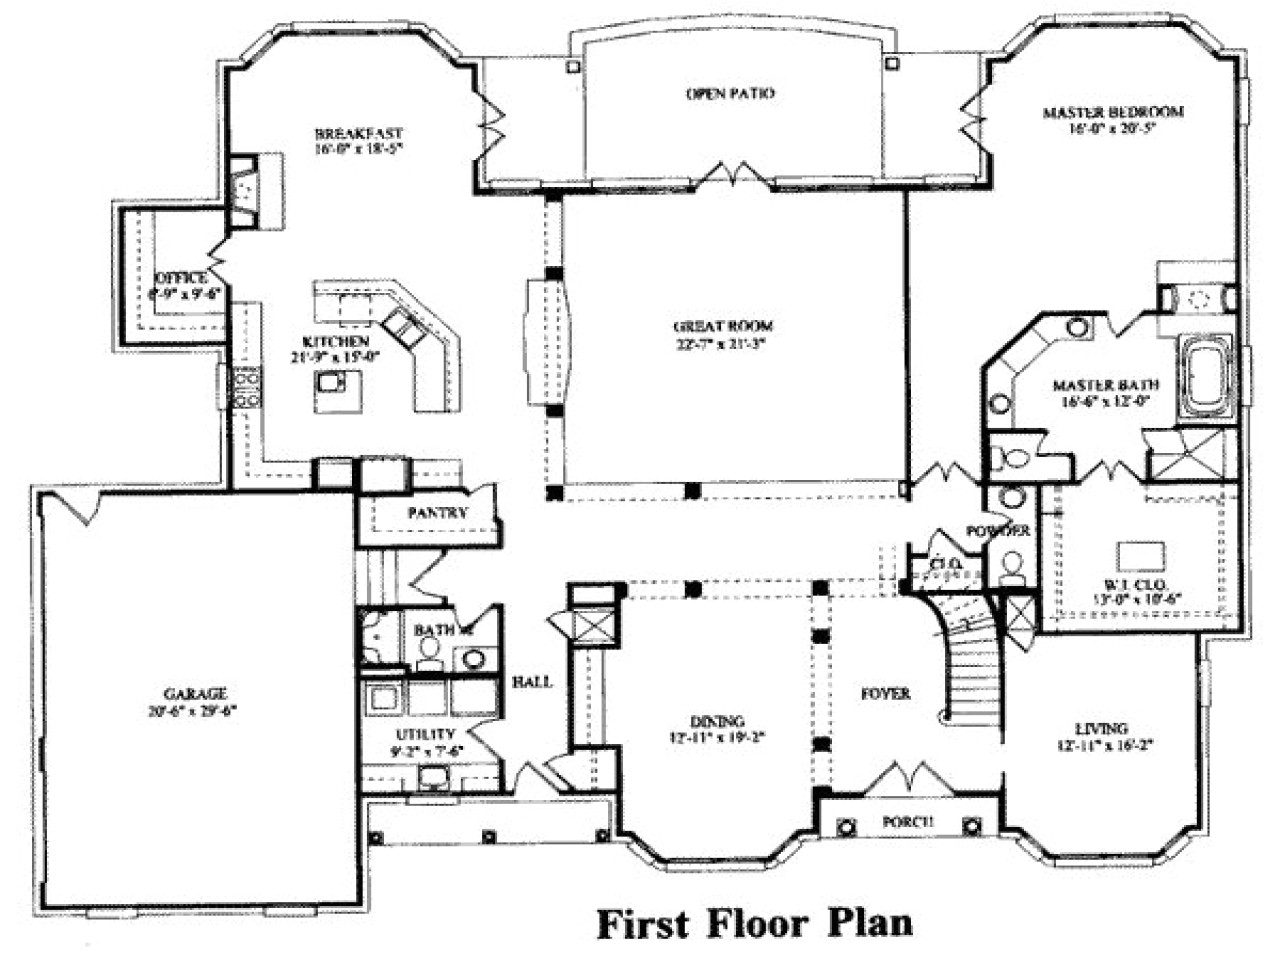 7 bedroom house floor plans